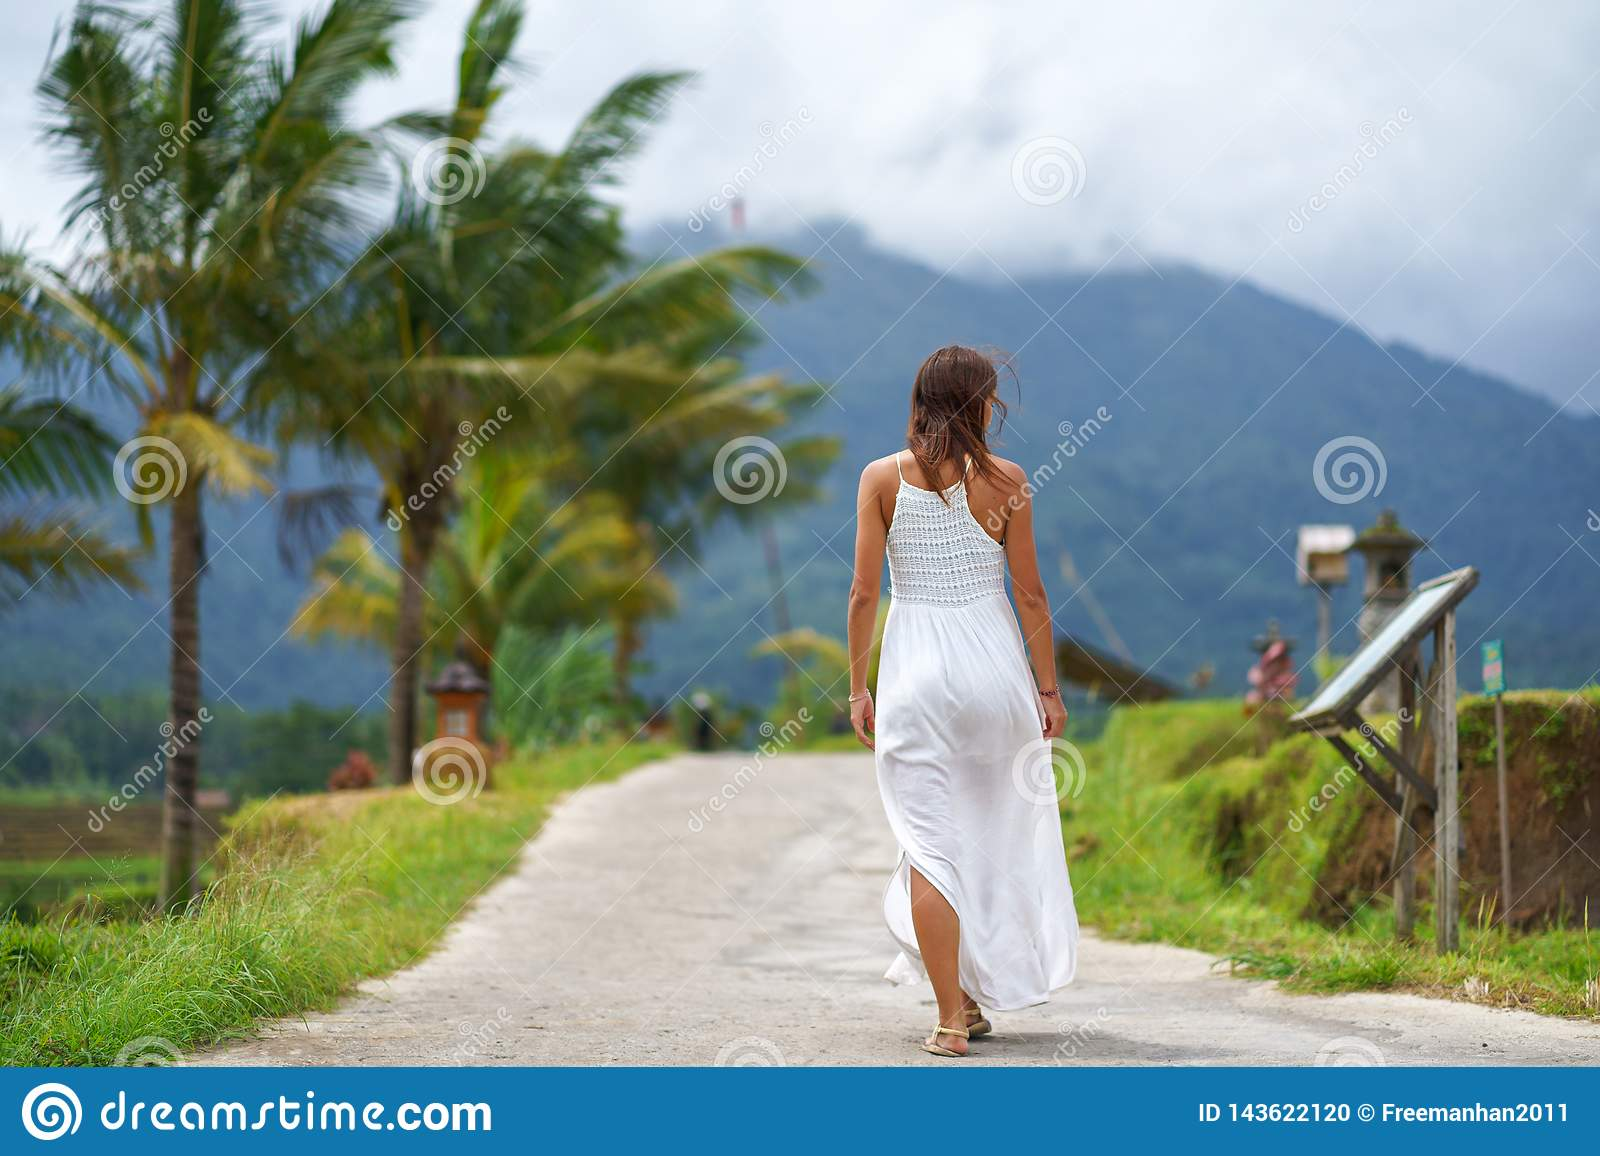 A tanned woman in a white dress walks forward on the road. The view from the back. In the background, a mountain in the fog and